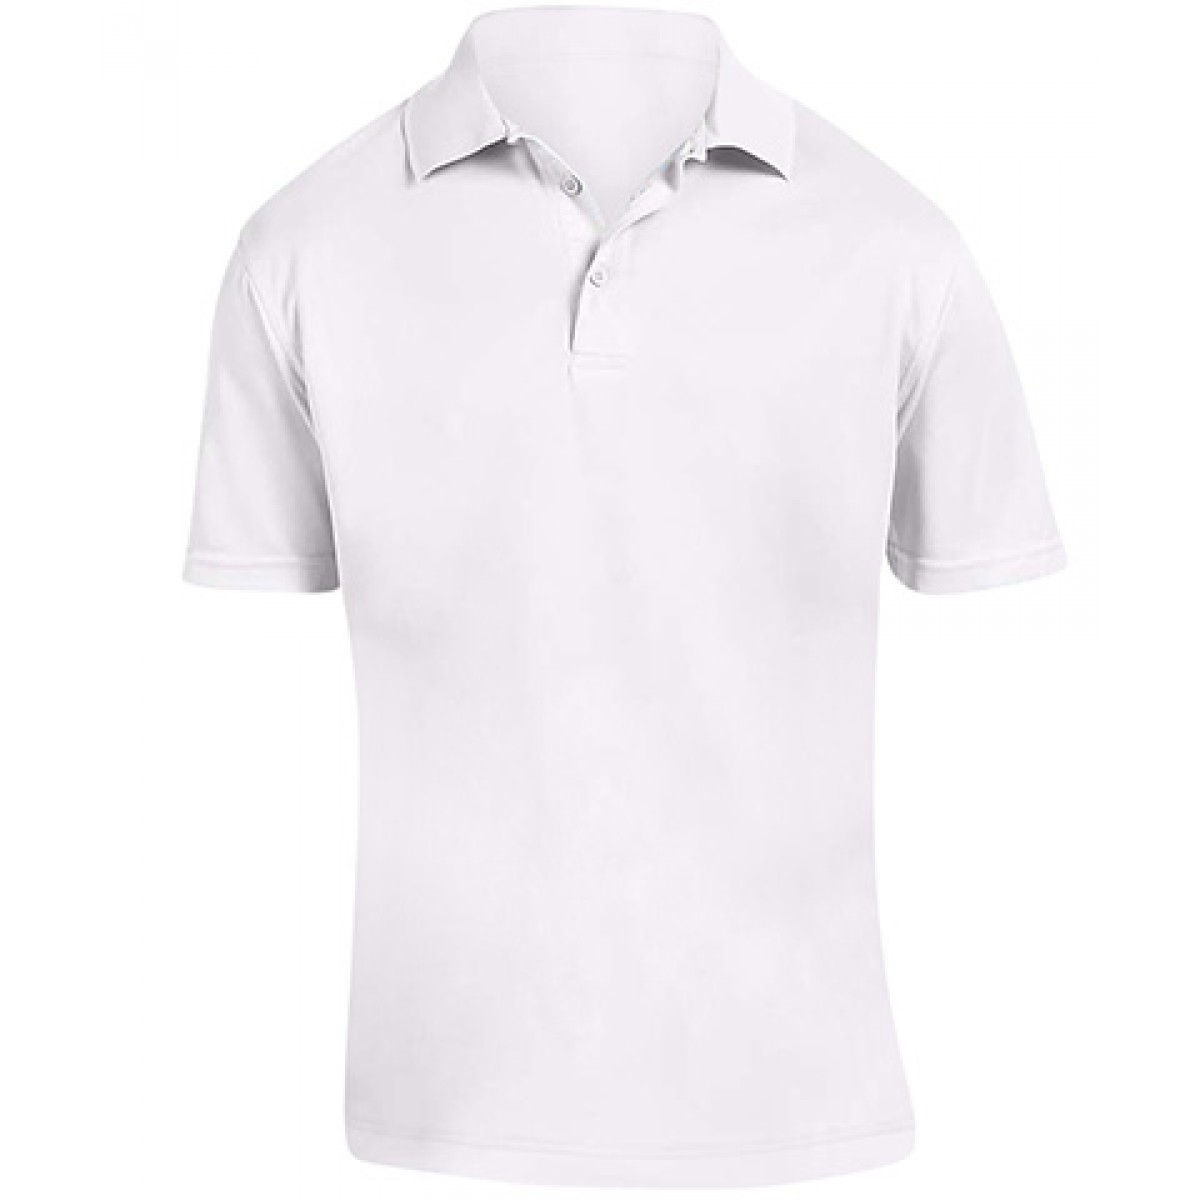 White Polytech Polo 4 oz. -White-3XL